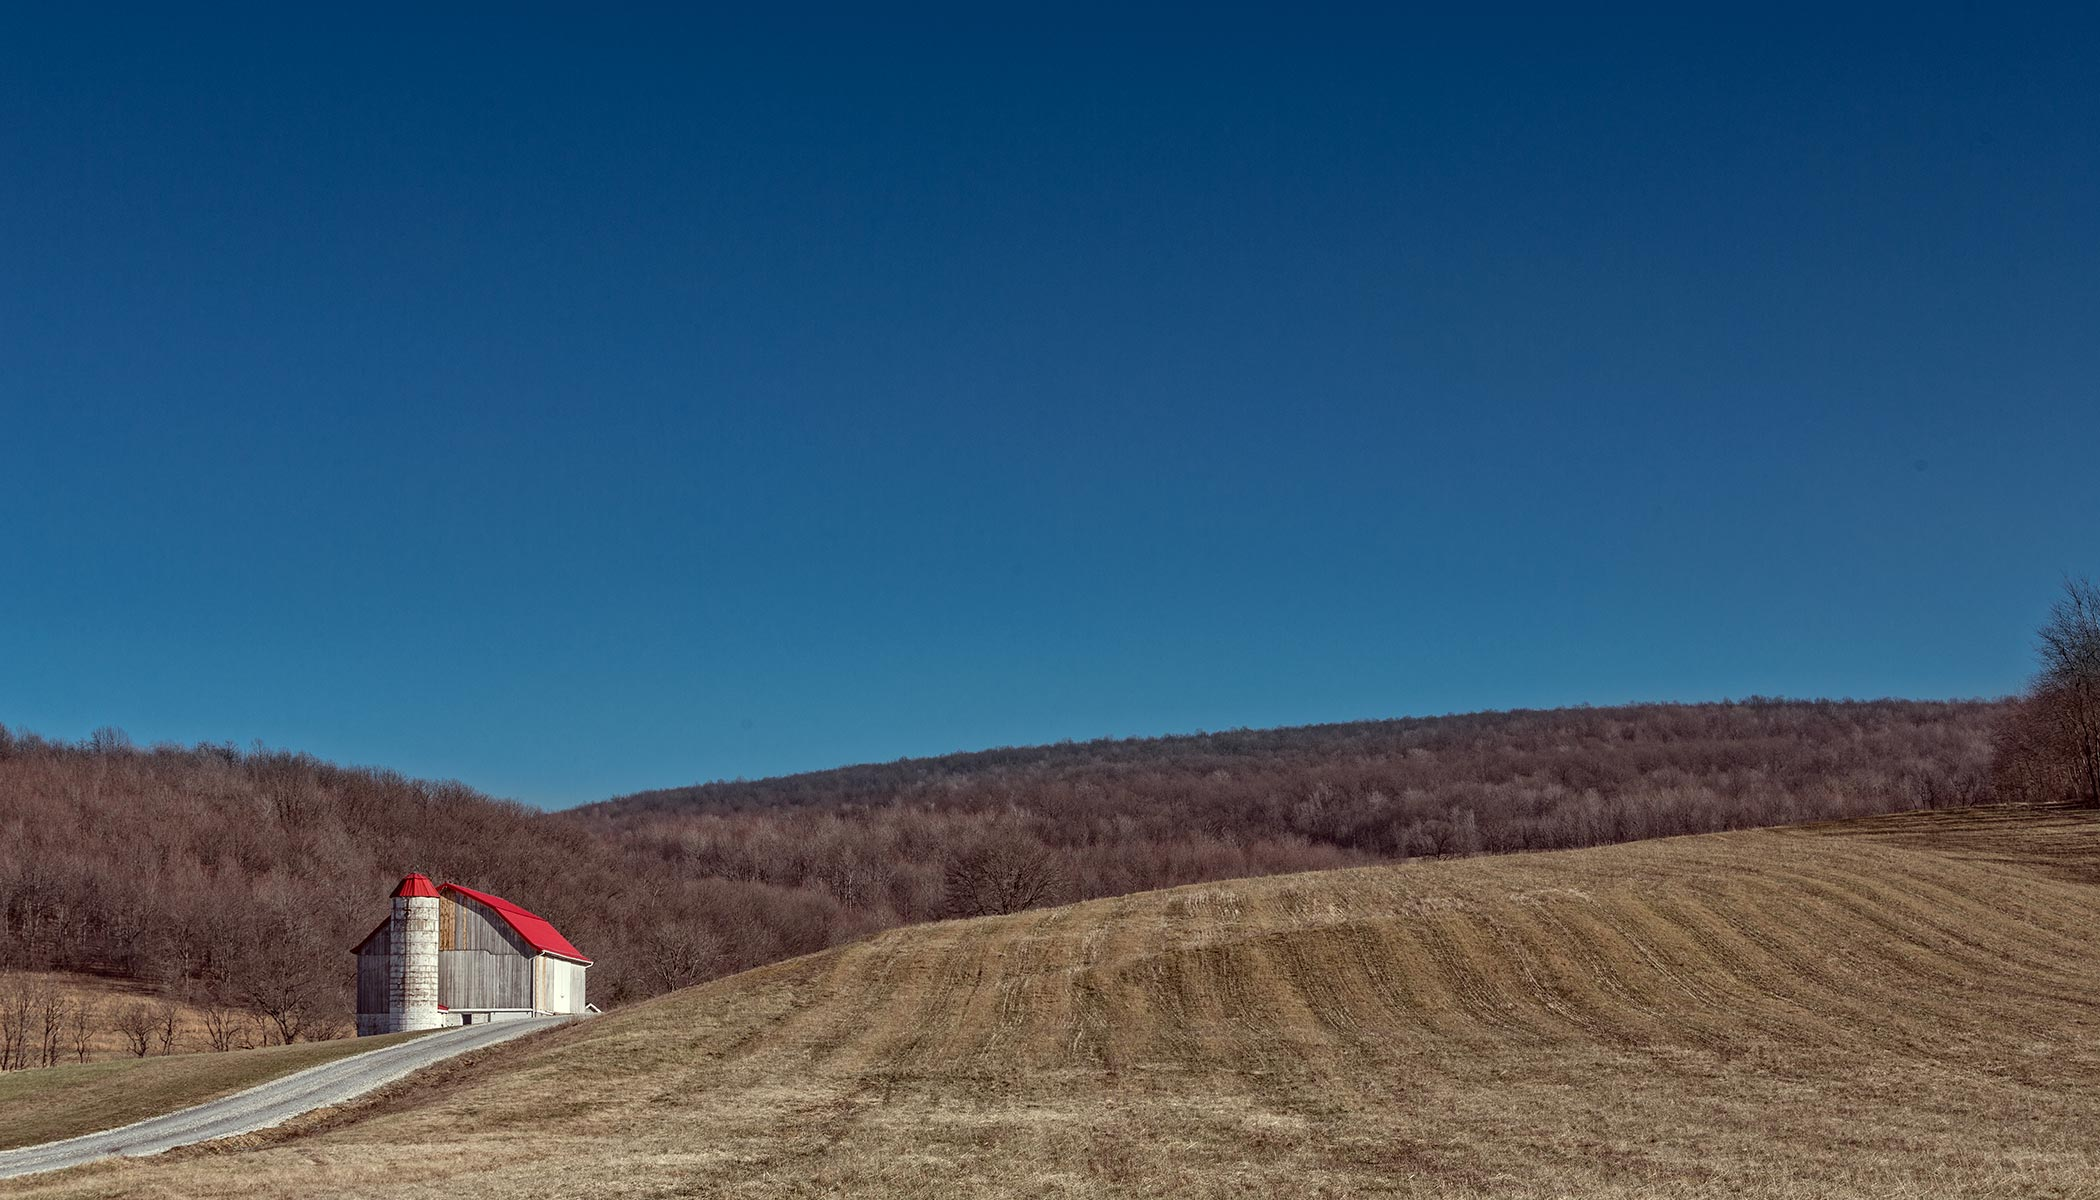 Travel-pennsylvania-barn